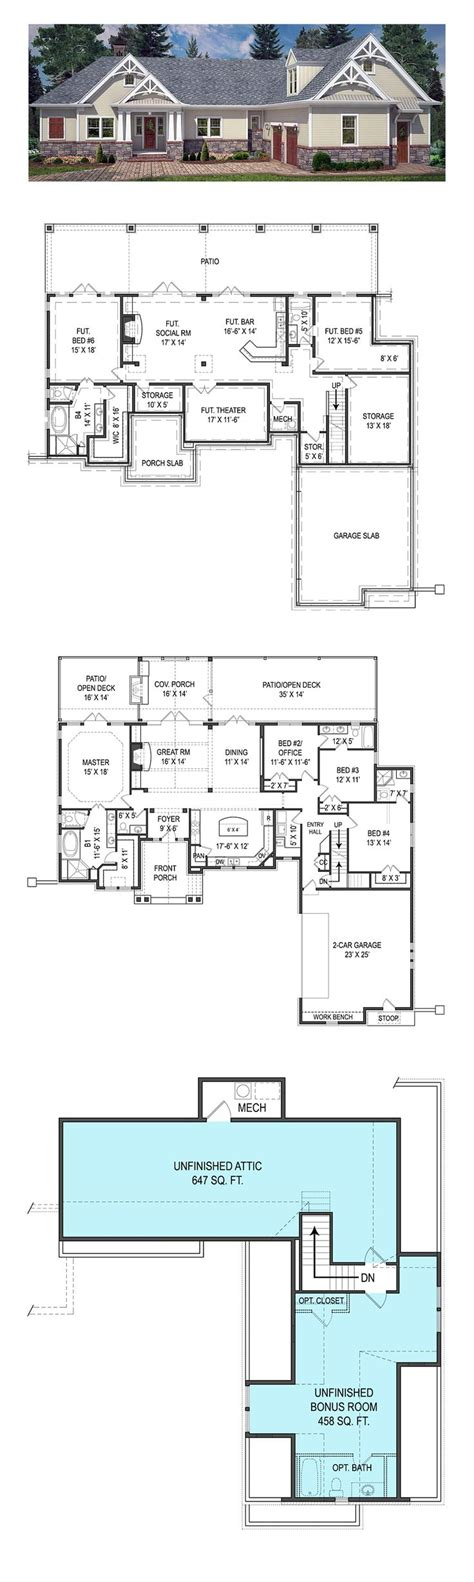 basement house plans house plans walkout basements home plans with basements